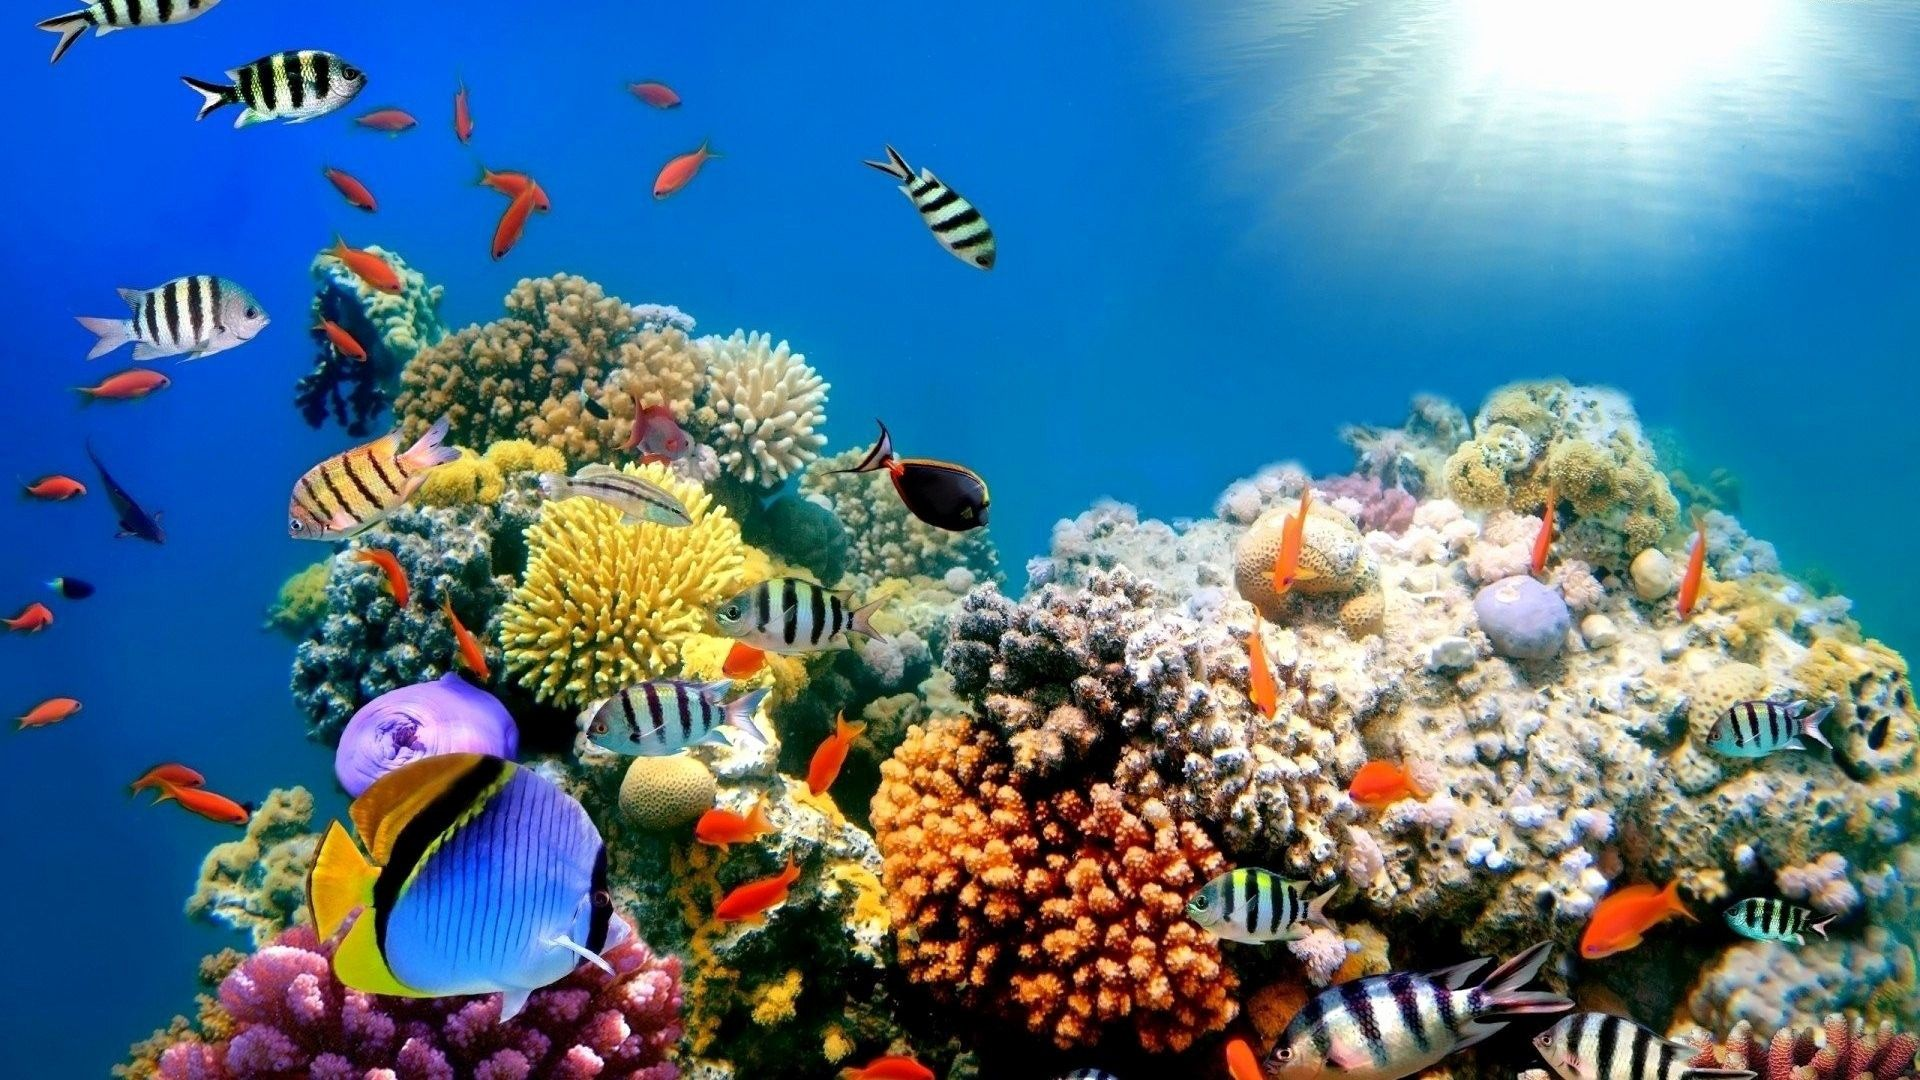 Tropical Fish Wallpapers 07 Top Free Tropical Fish Hd Backgrounds For Android On In 2020 Great Barrier Reef Underwater Coral Reef